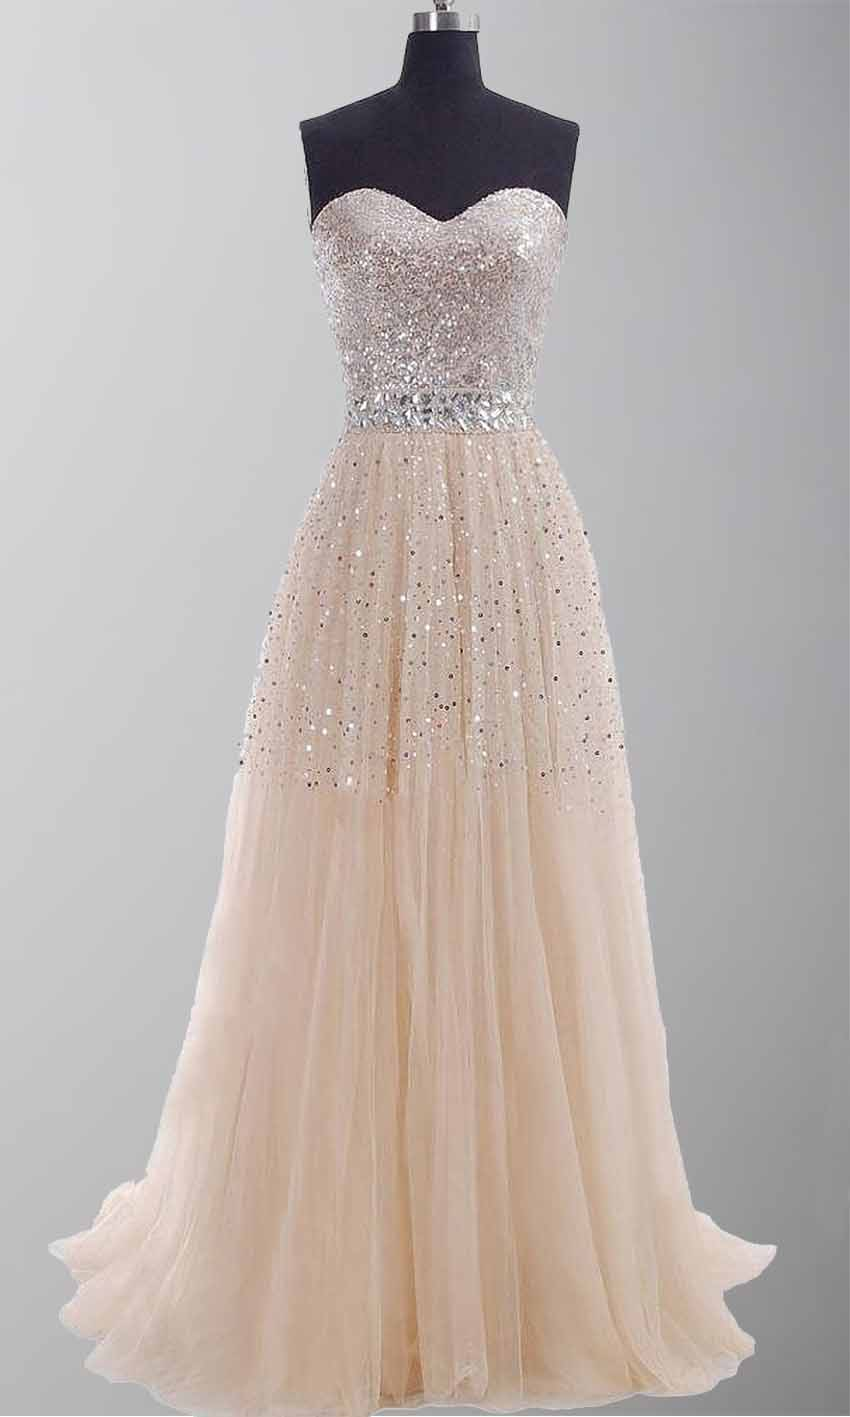 Champagne Sequin Sweetheart Long Prom Gowns KSP254 [KSP254] - £99.00 ...